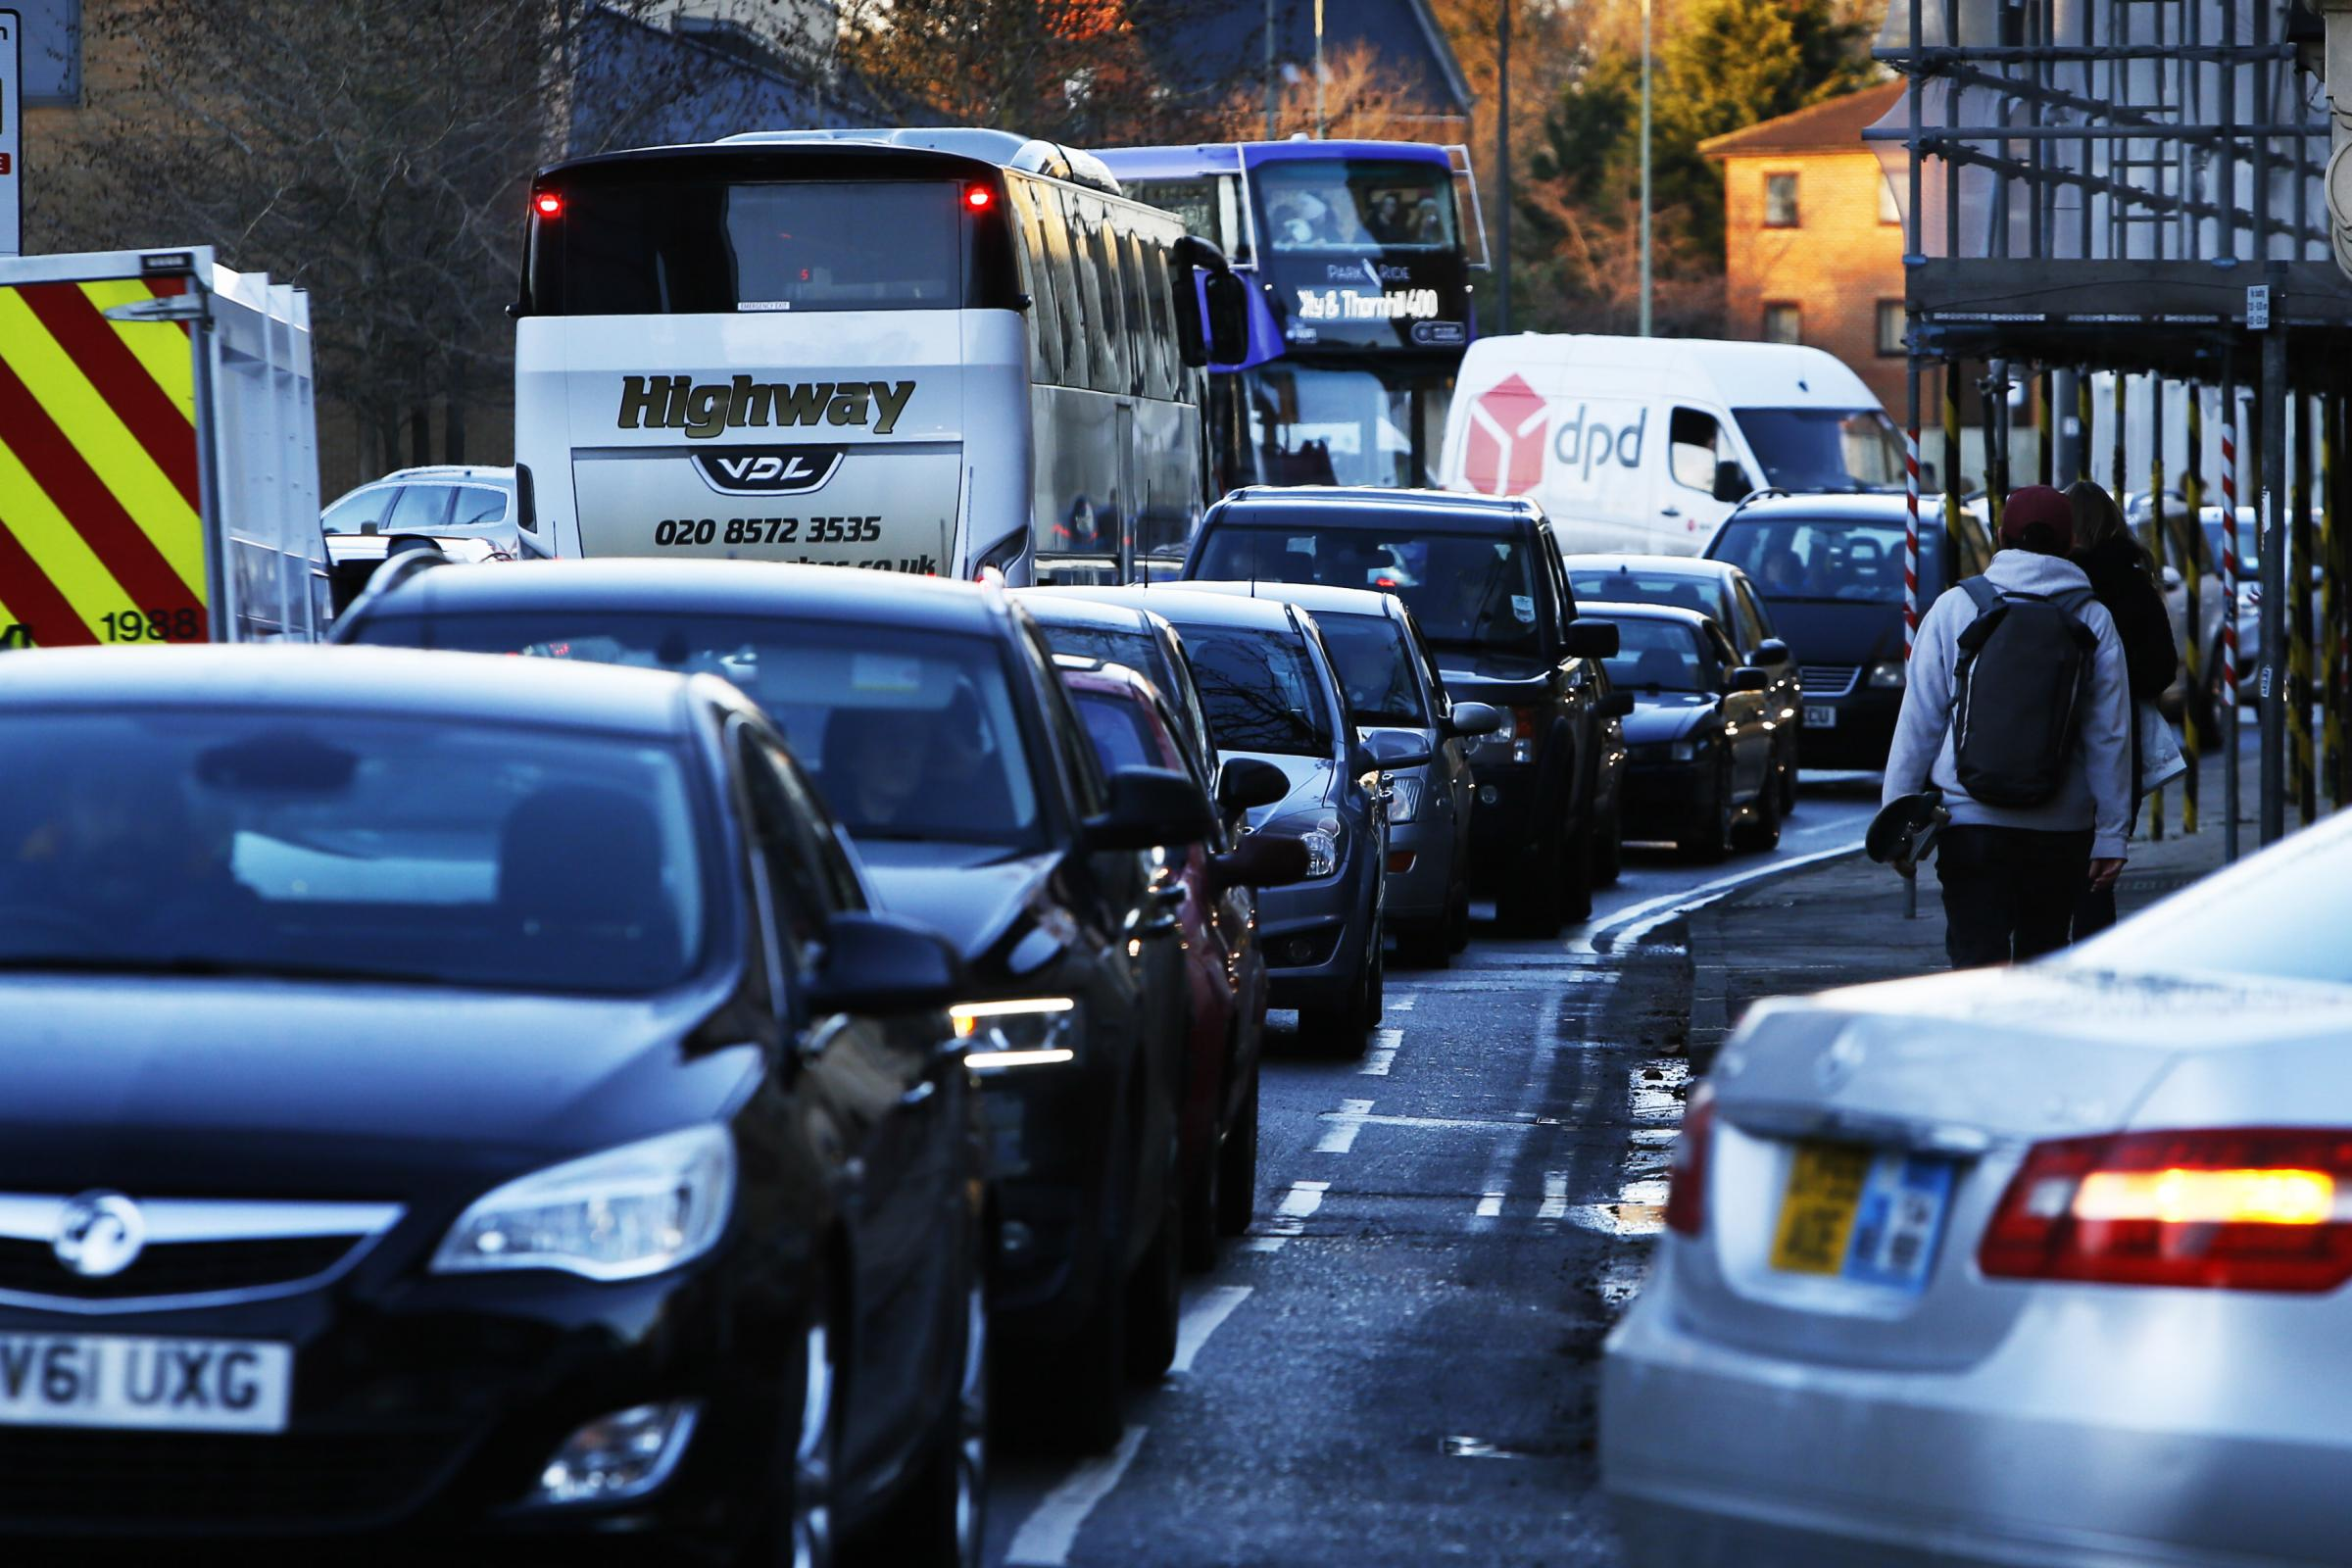 TRAFFIC & TRAVEL - Latest updates for Oxfordshire